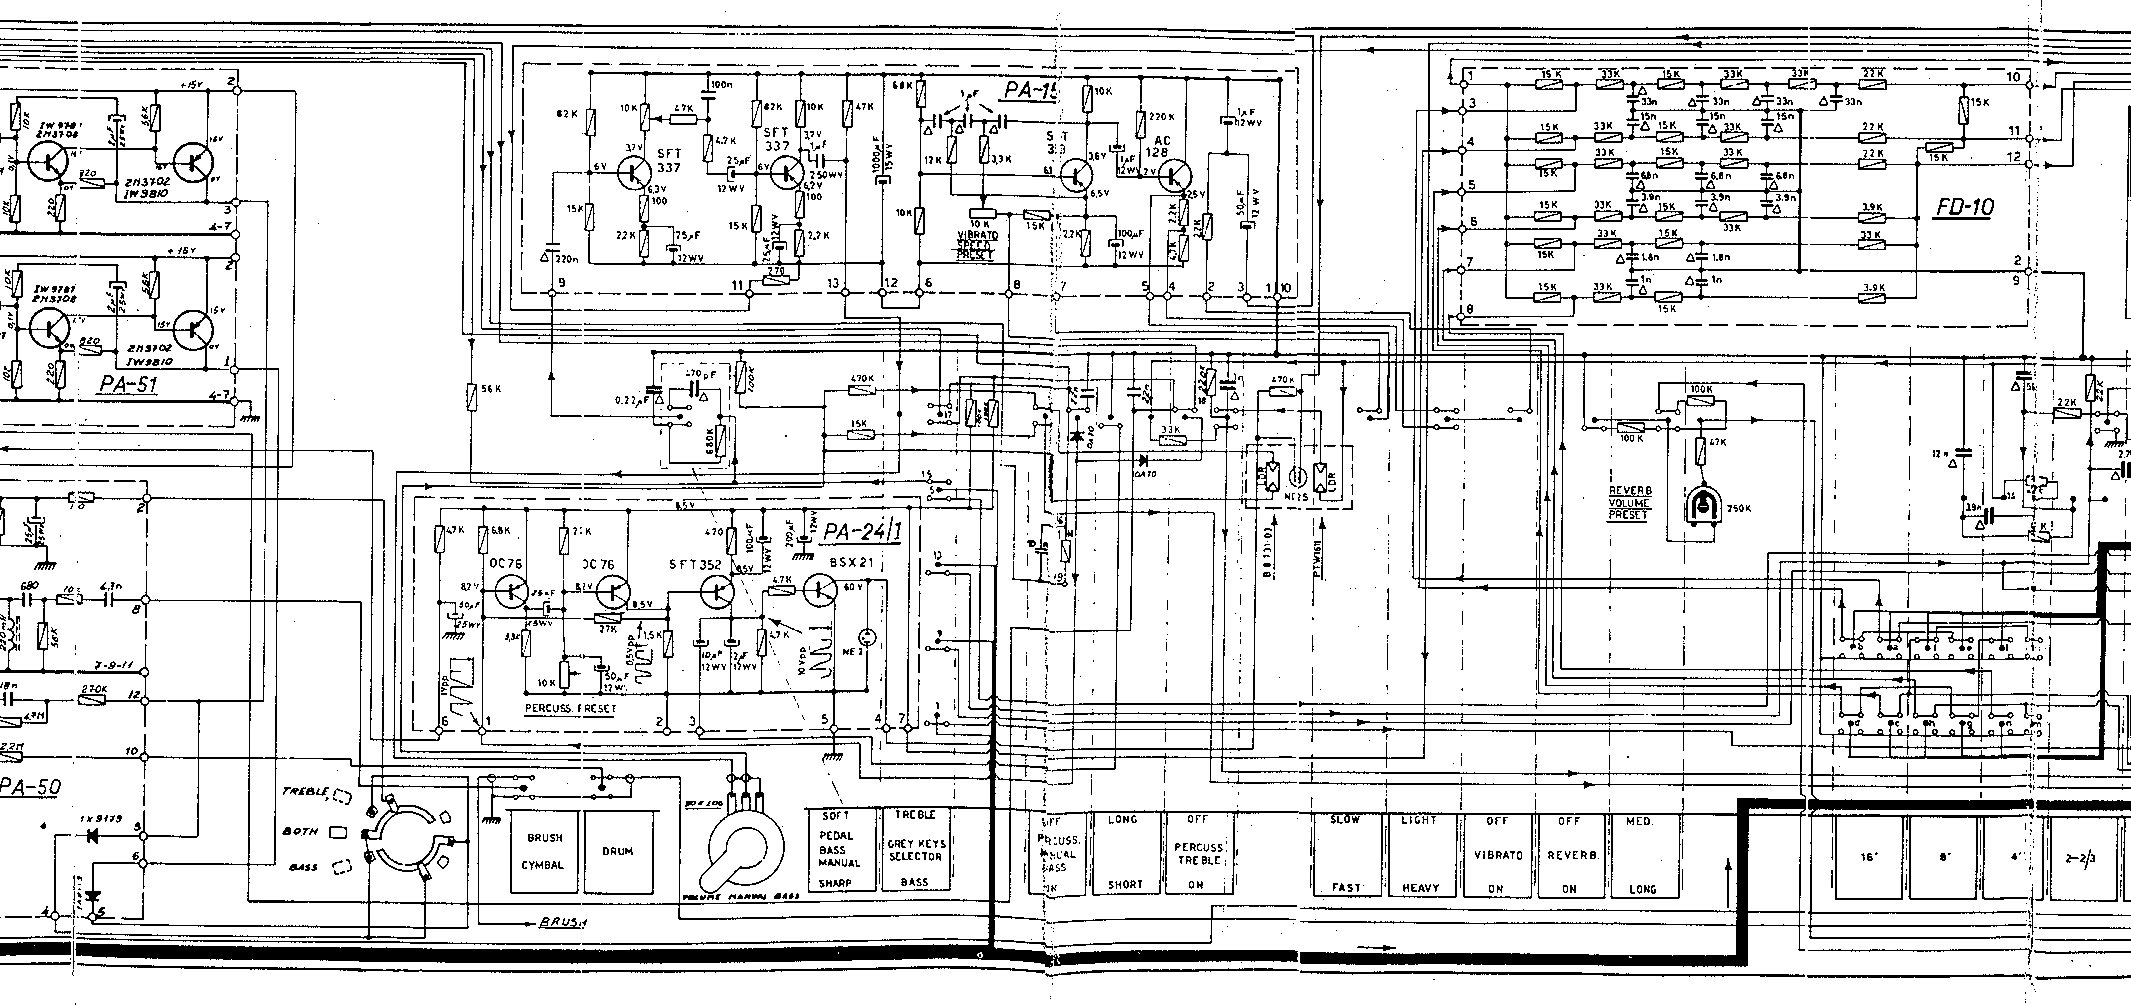 deluxe 2 farfisa compact deluxe schematics farfisa org farfisa wiring diagram at panicattacktreatment.co